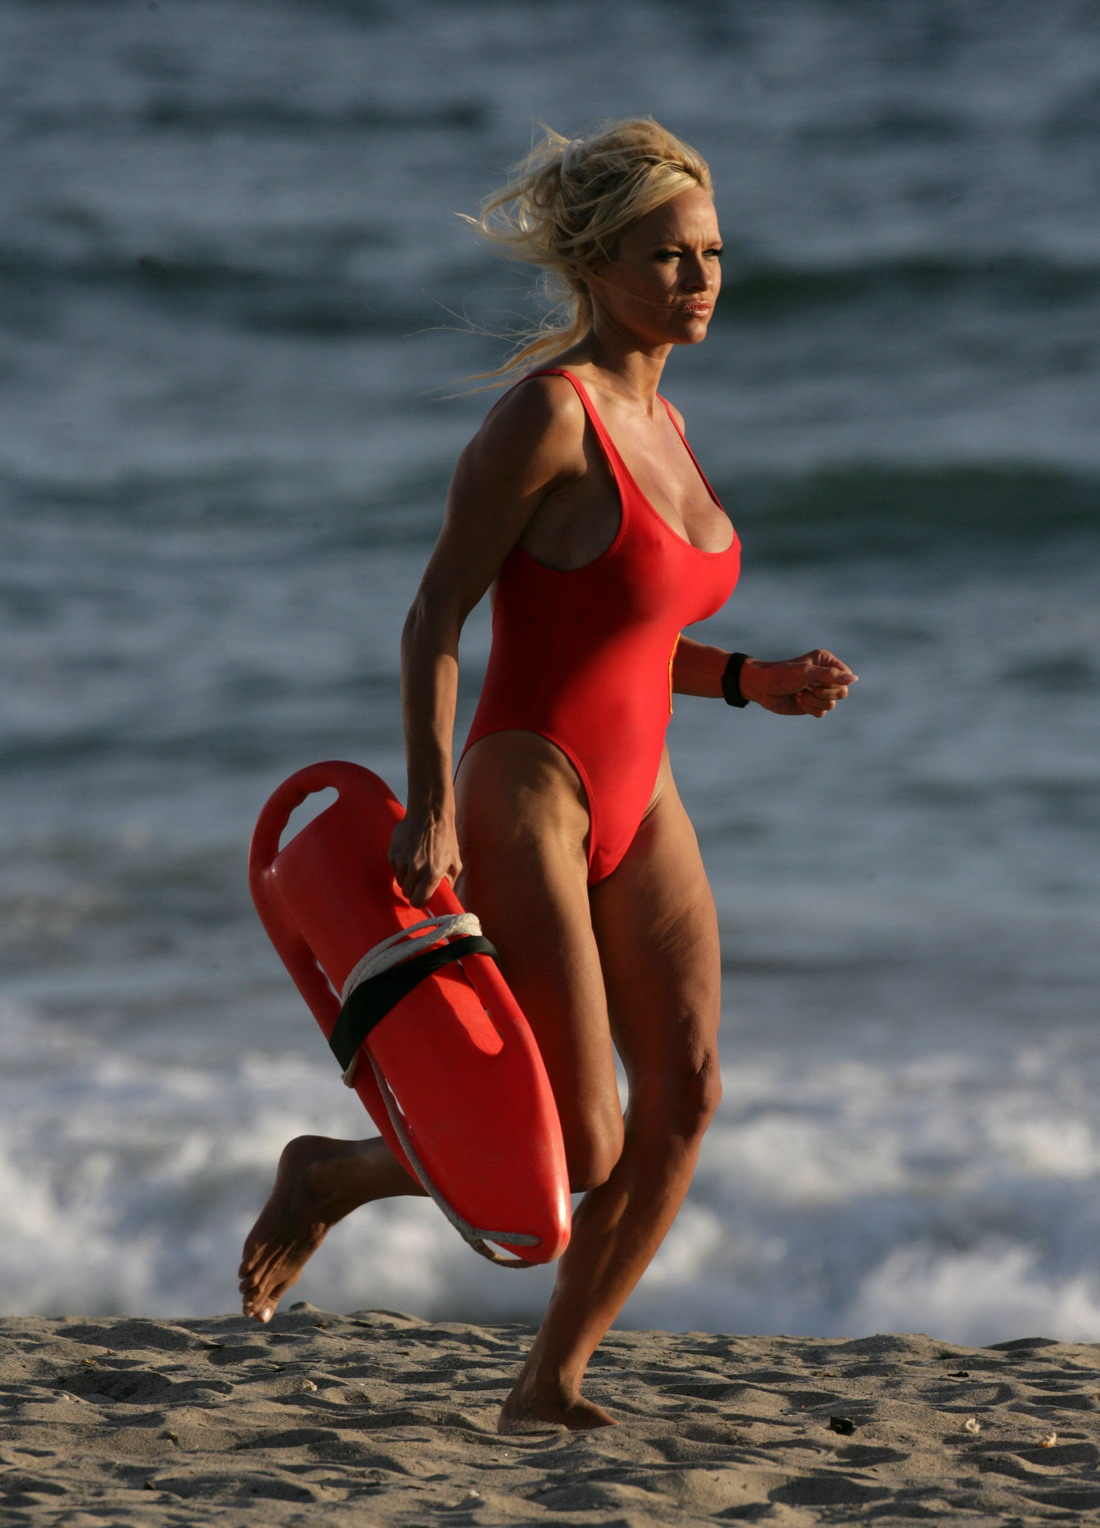 pamela anderson borat - photo #33